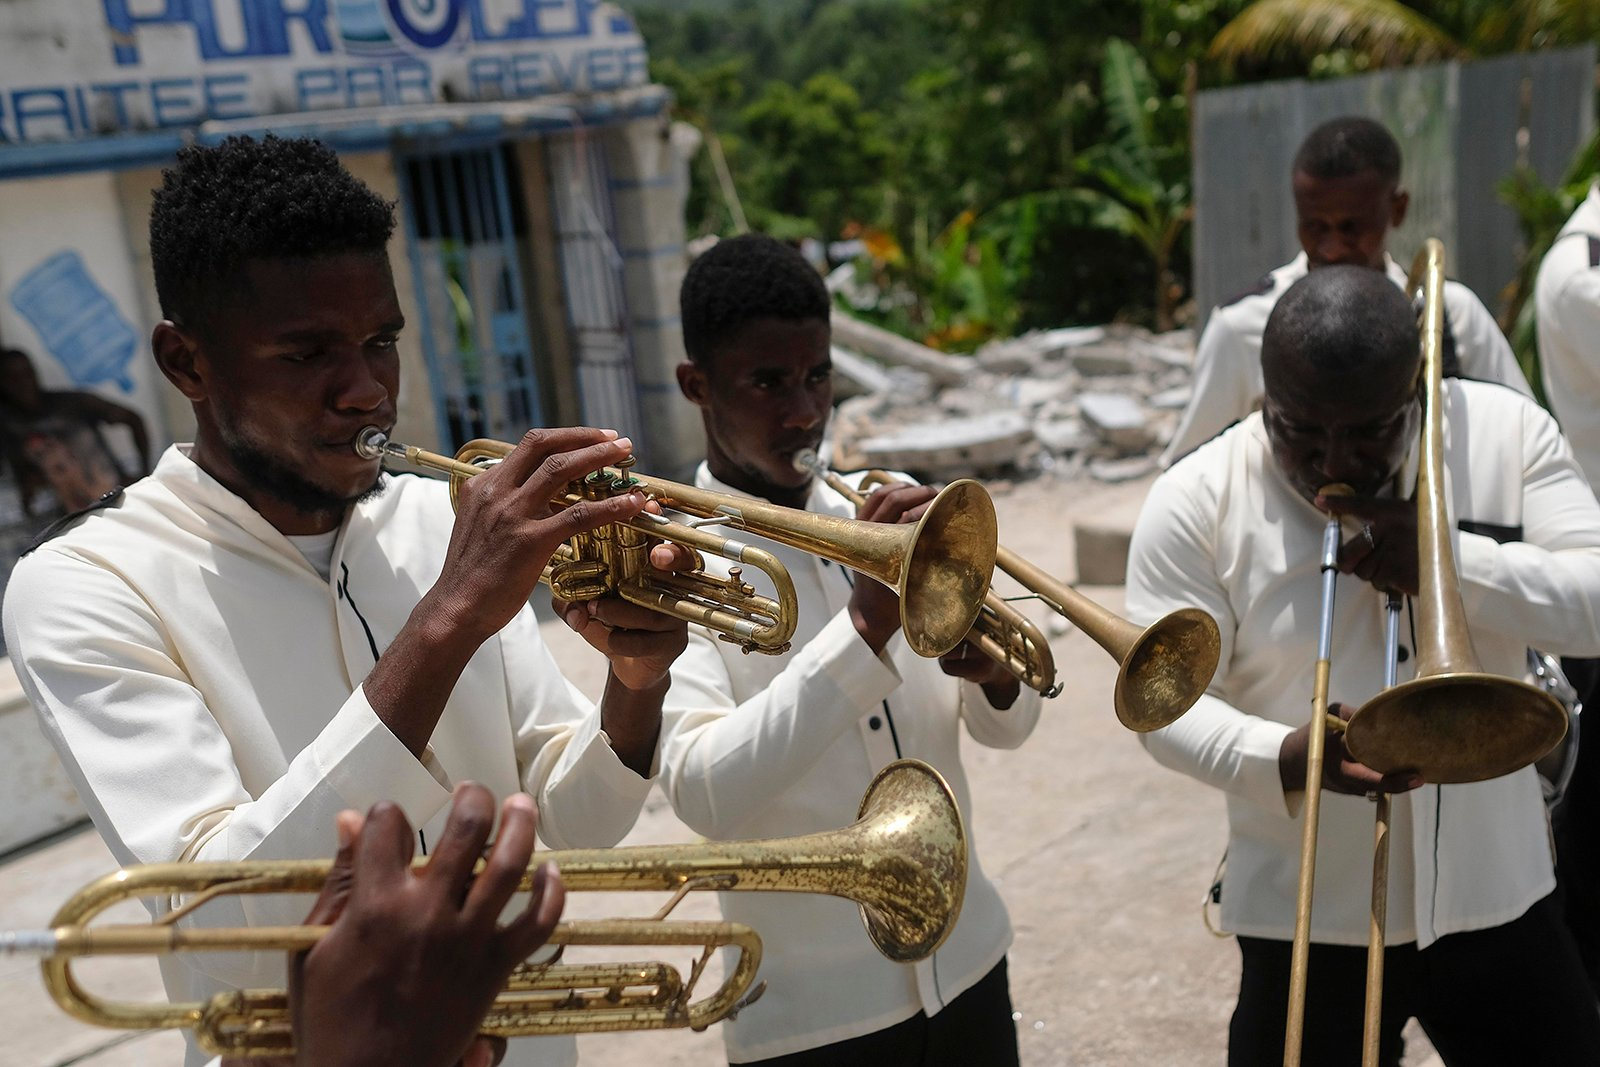 A band plays during the funeral of Baptist church minister Andre Tessono, who was killed during the 7.2 magnitude earthquake that hit the area eight days ago, in the Picot neighborhood in Les Cayes, Haiti, Sunday, Aug. 22, 2021. (AP Photo/Matias Delacroix)